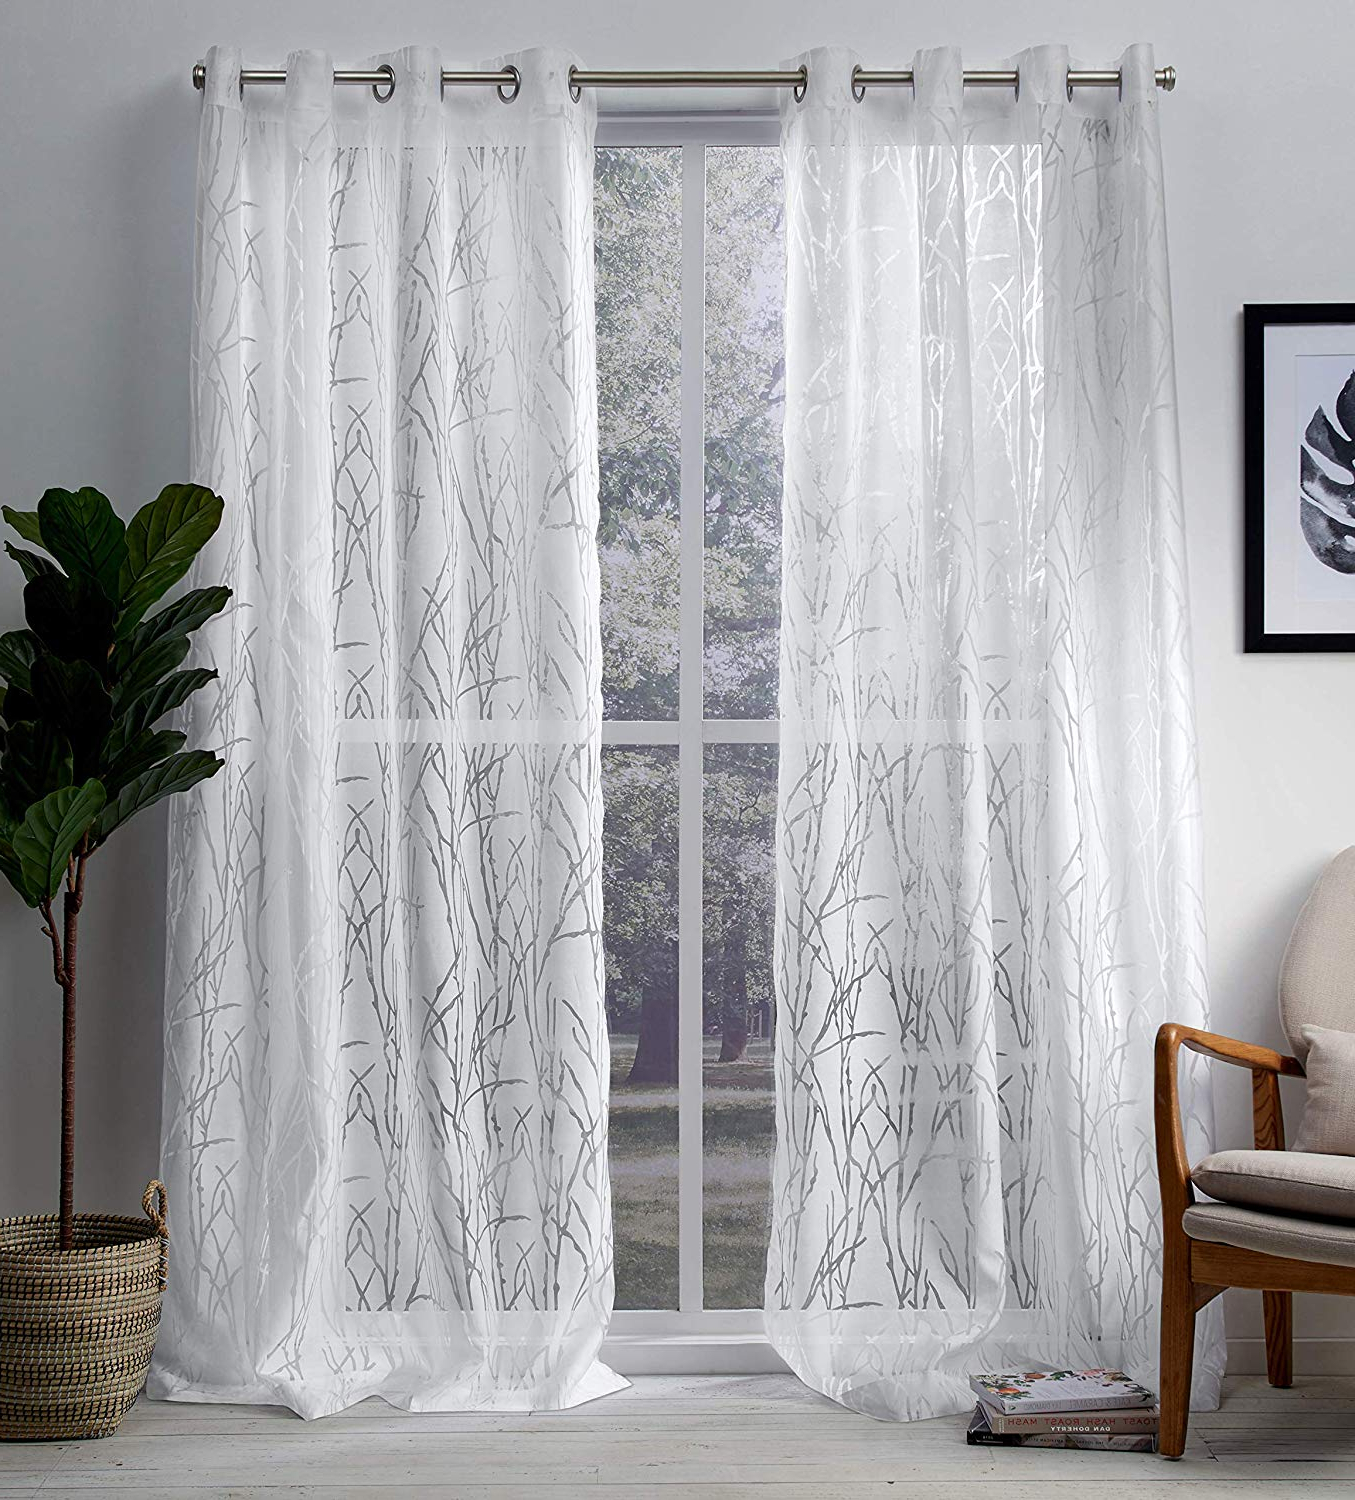 Recent Wilshire Burnout Grommet Top Curtain Panel Pairs Within Exclusive Home Curtains Edinburgh Sheer Branch Burnout Window Curtain Panel Pair With Grommet Top, 52x96, Winter White, 2 Piece (View 13 of 20)